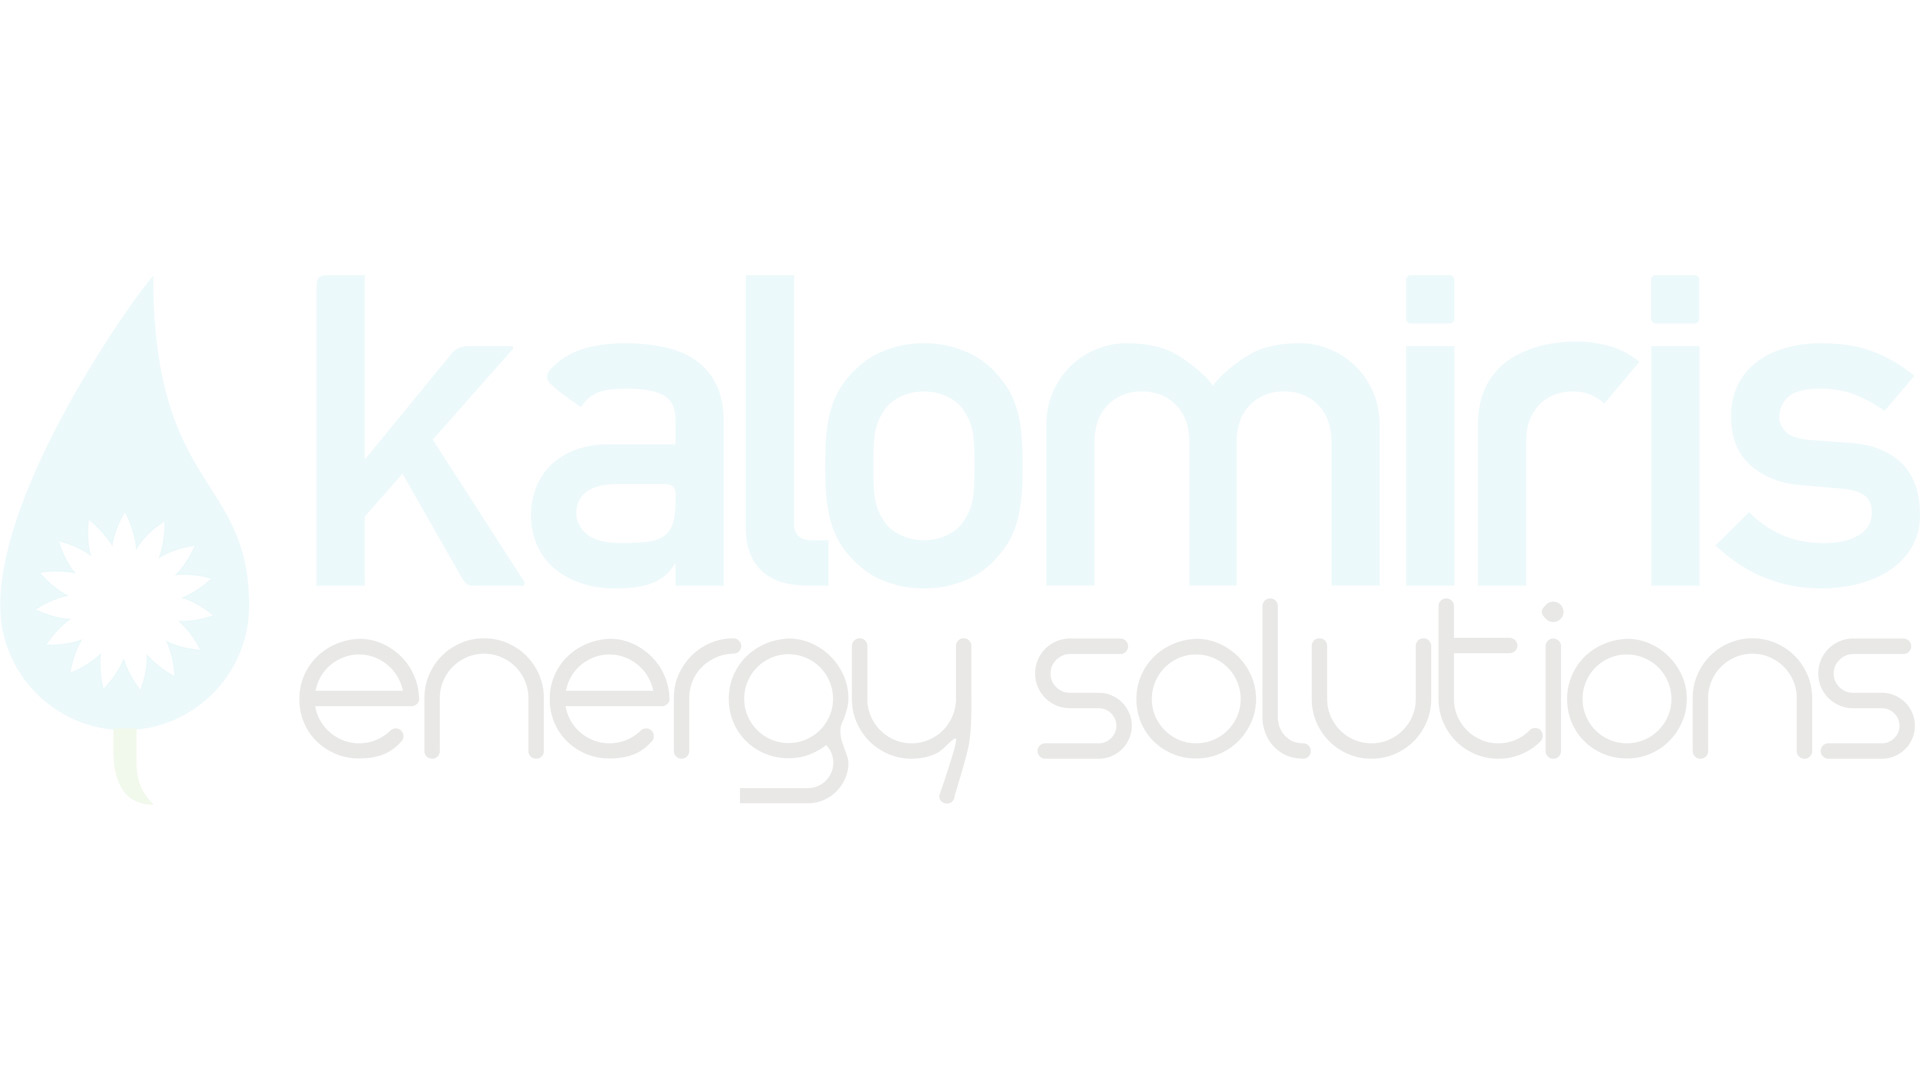 Ceiling Fan CASAFAN Eco Elements 103 WE White / Light Gray 40.5 (103cm)